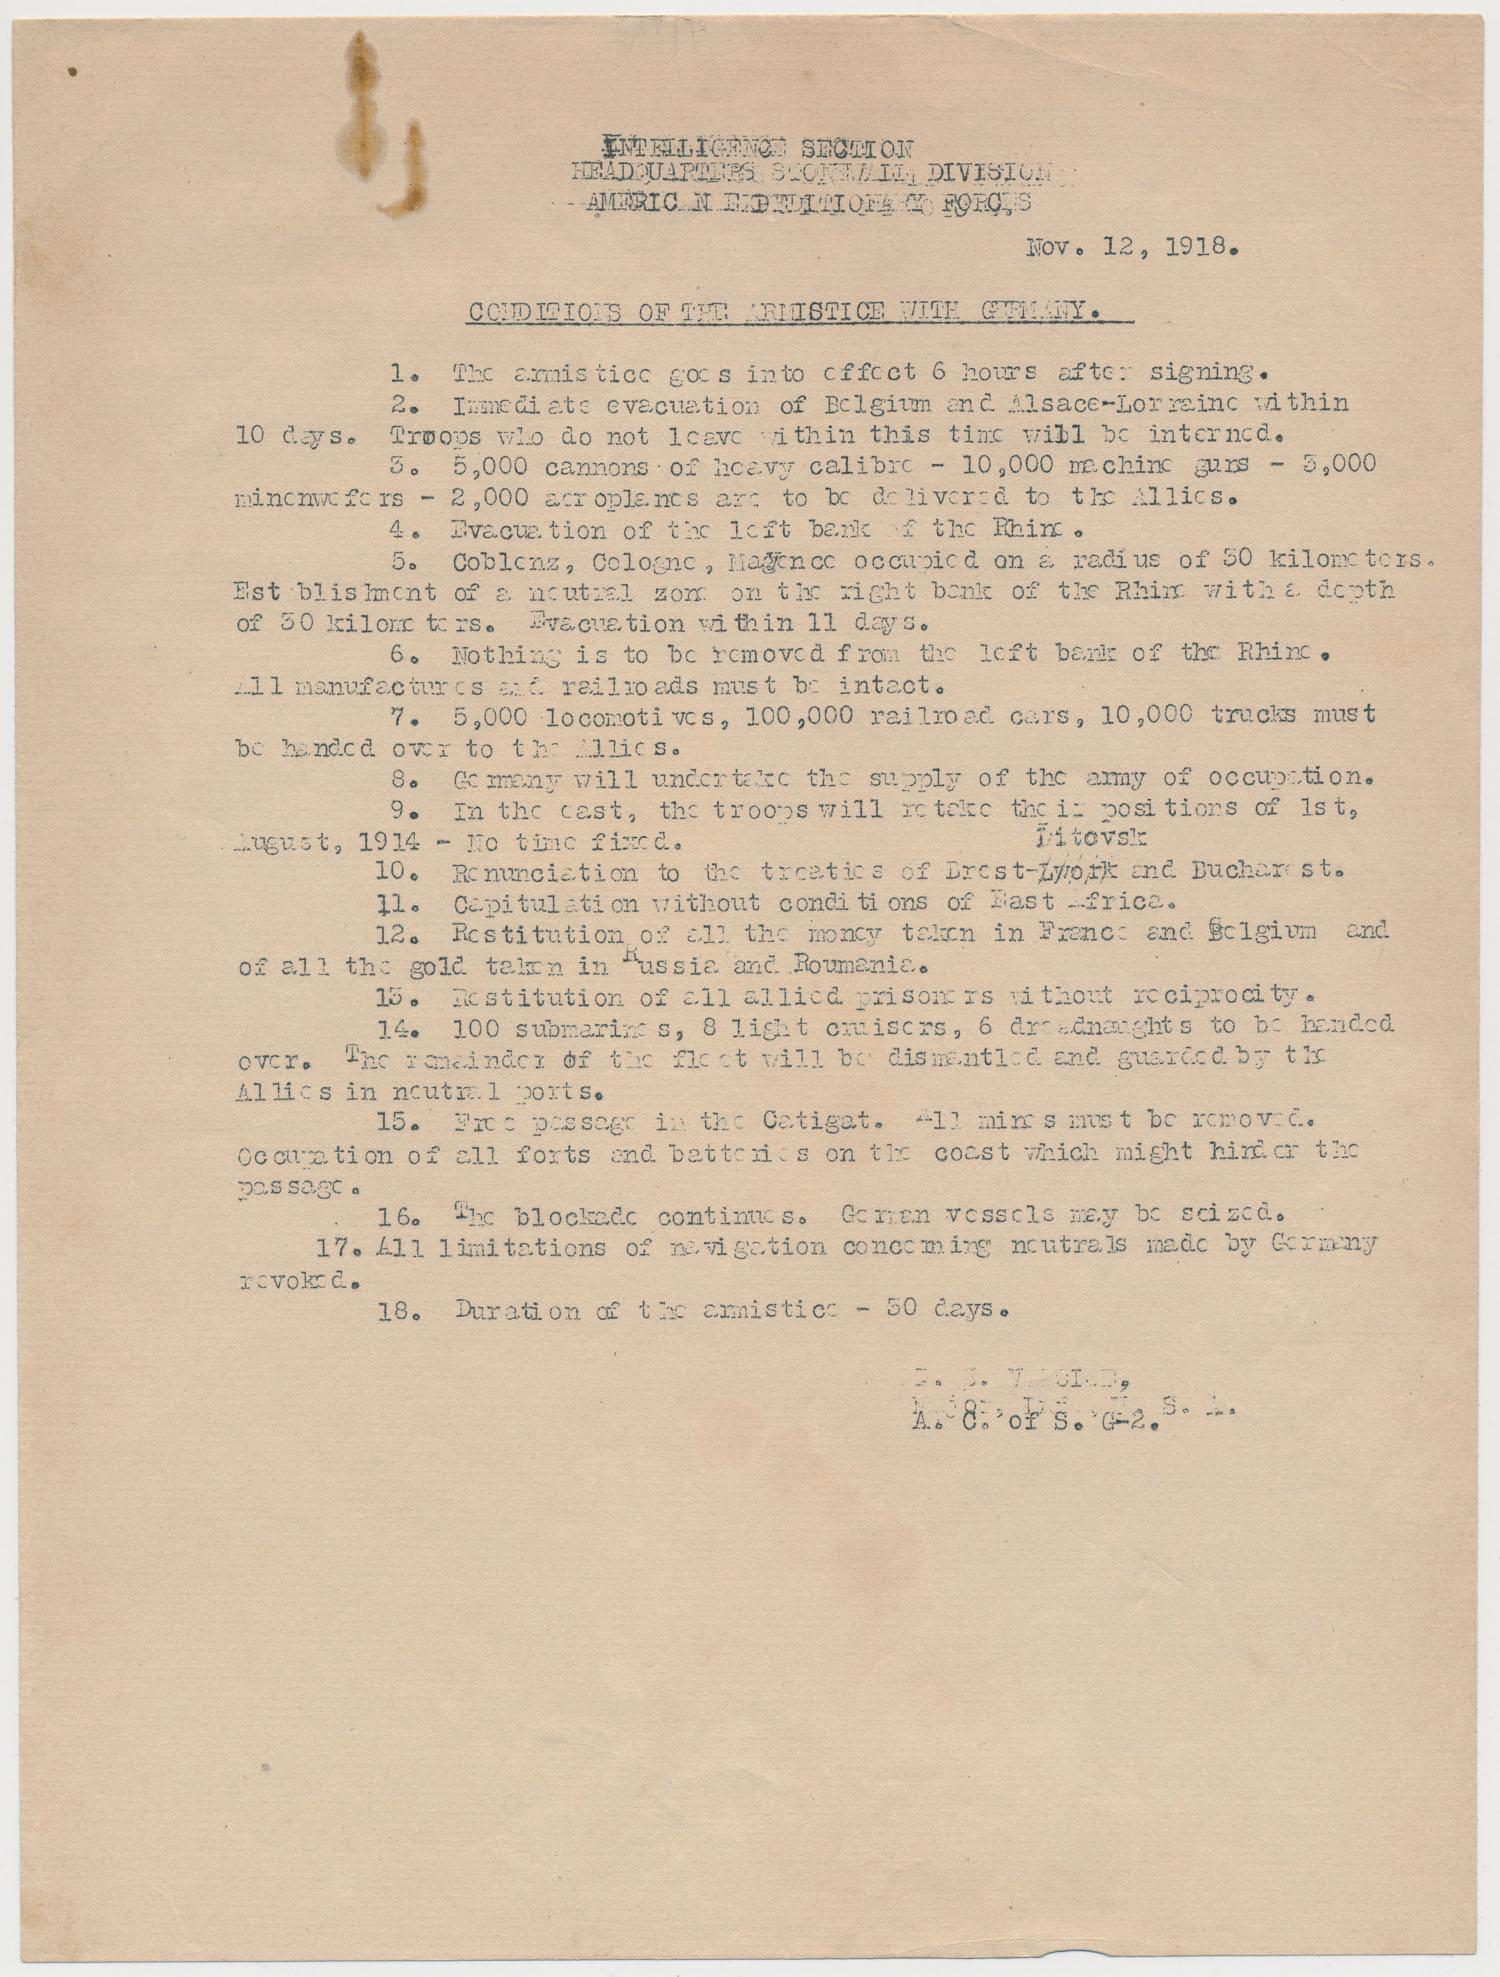 ALLIED 'CONDITIONS OF THE ARMISTICE WITH GERMANY'